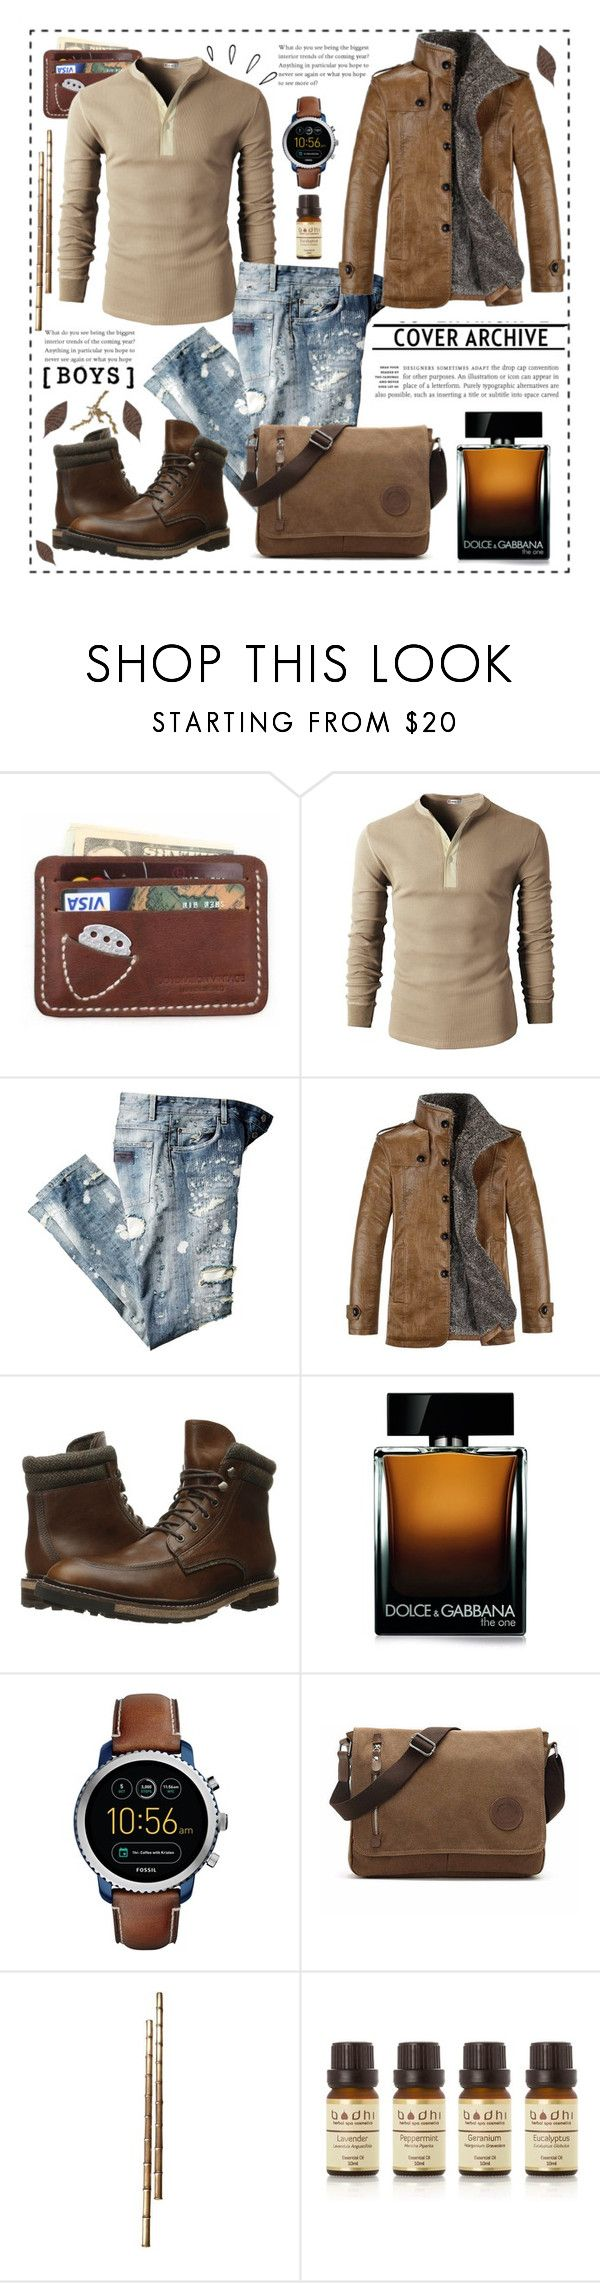 """""""MEN LEATHER BOOTS"""" by celine-diaz-1 ❤ liked on Polyvore featuring Woolrich, Dolce&Gabbana, FOSSIL, Bodhi, Old Navy, men's fashion and menswear"""